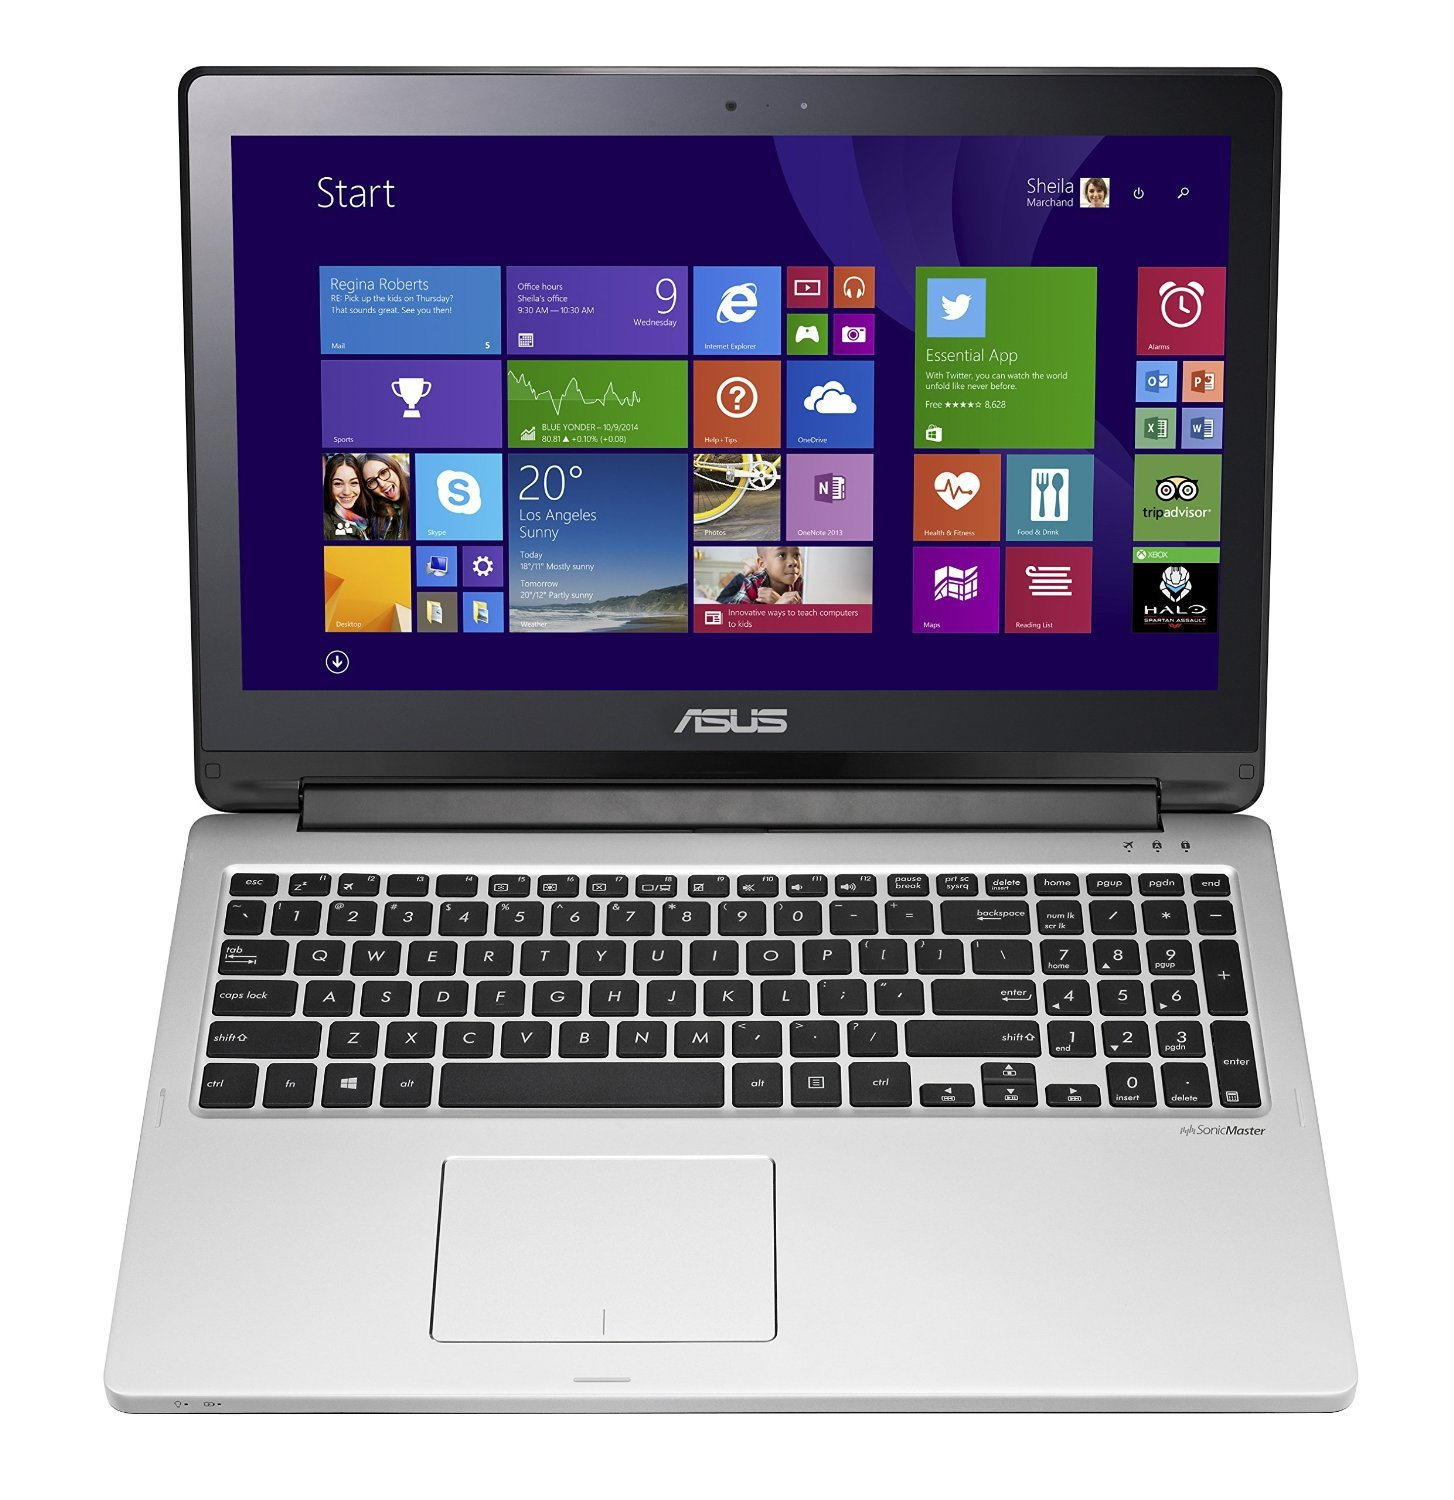 Amazon asus tp500 15 inch touch laptop old version computers amazon asus tp500 15 inch touch laptop old version computers accessories greentooth Image collections